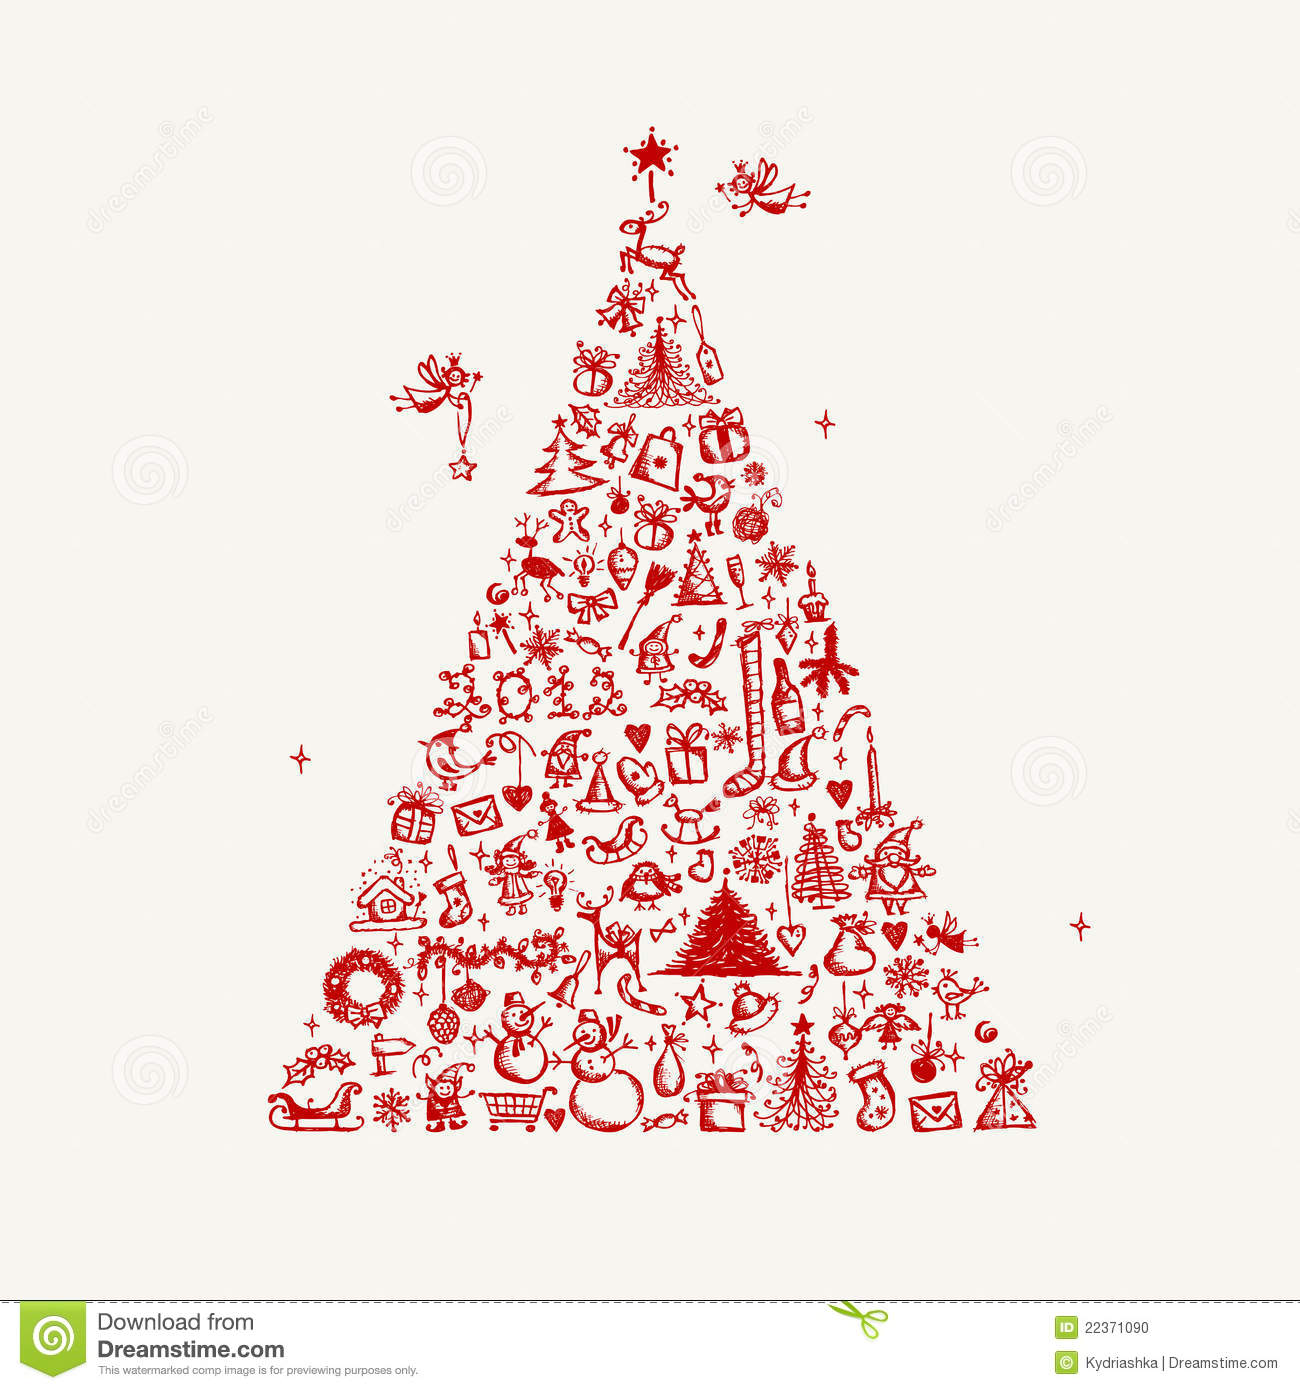 Drawing Christmas Tree Sketch.Christmas Tree Sketch For Your Design Stock Vector